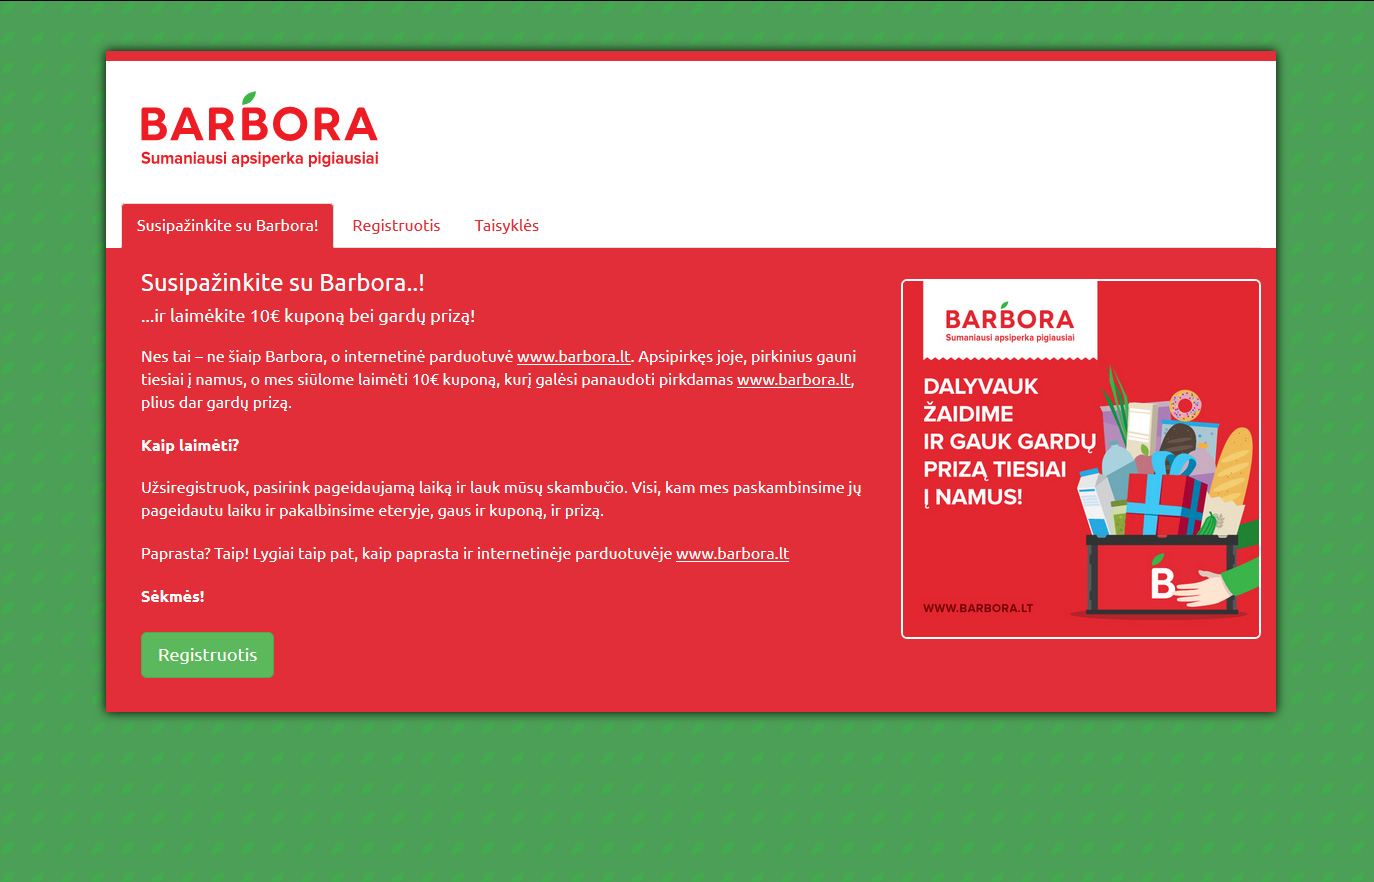 Barbora - online contest and landing page